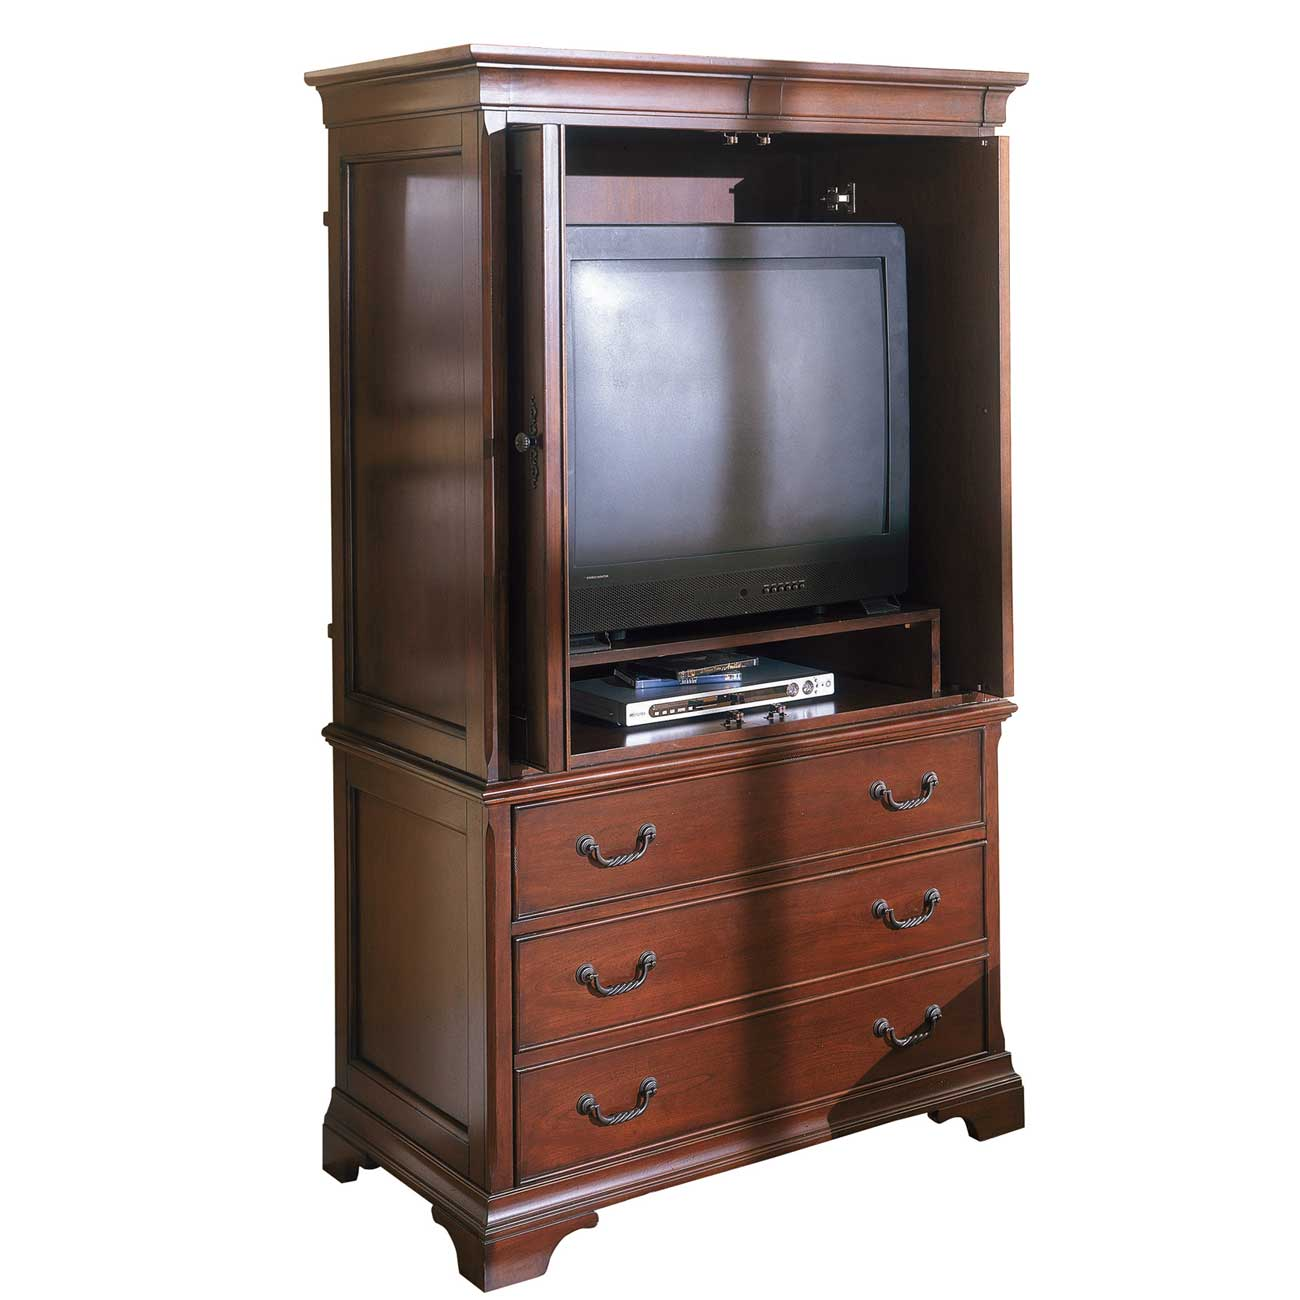 Home Office Equipment Cabinet with Three Drawers